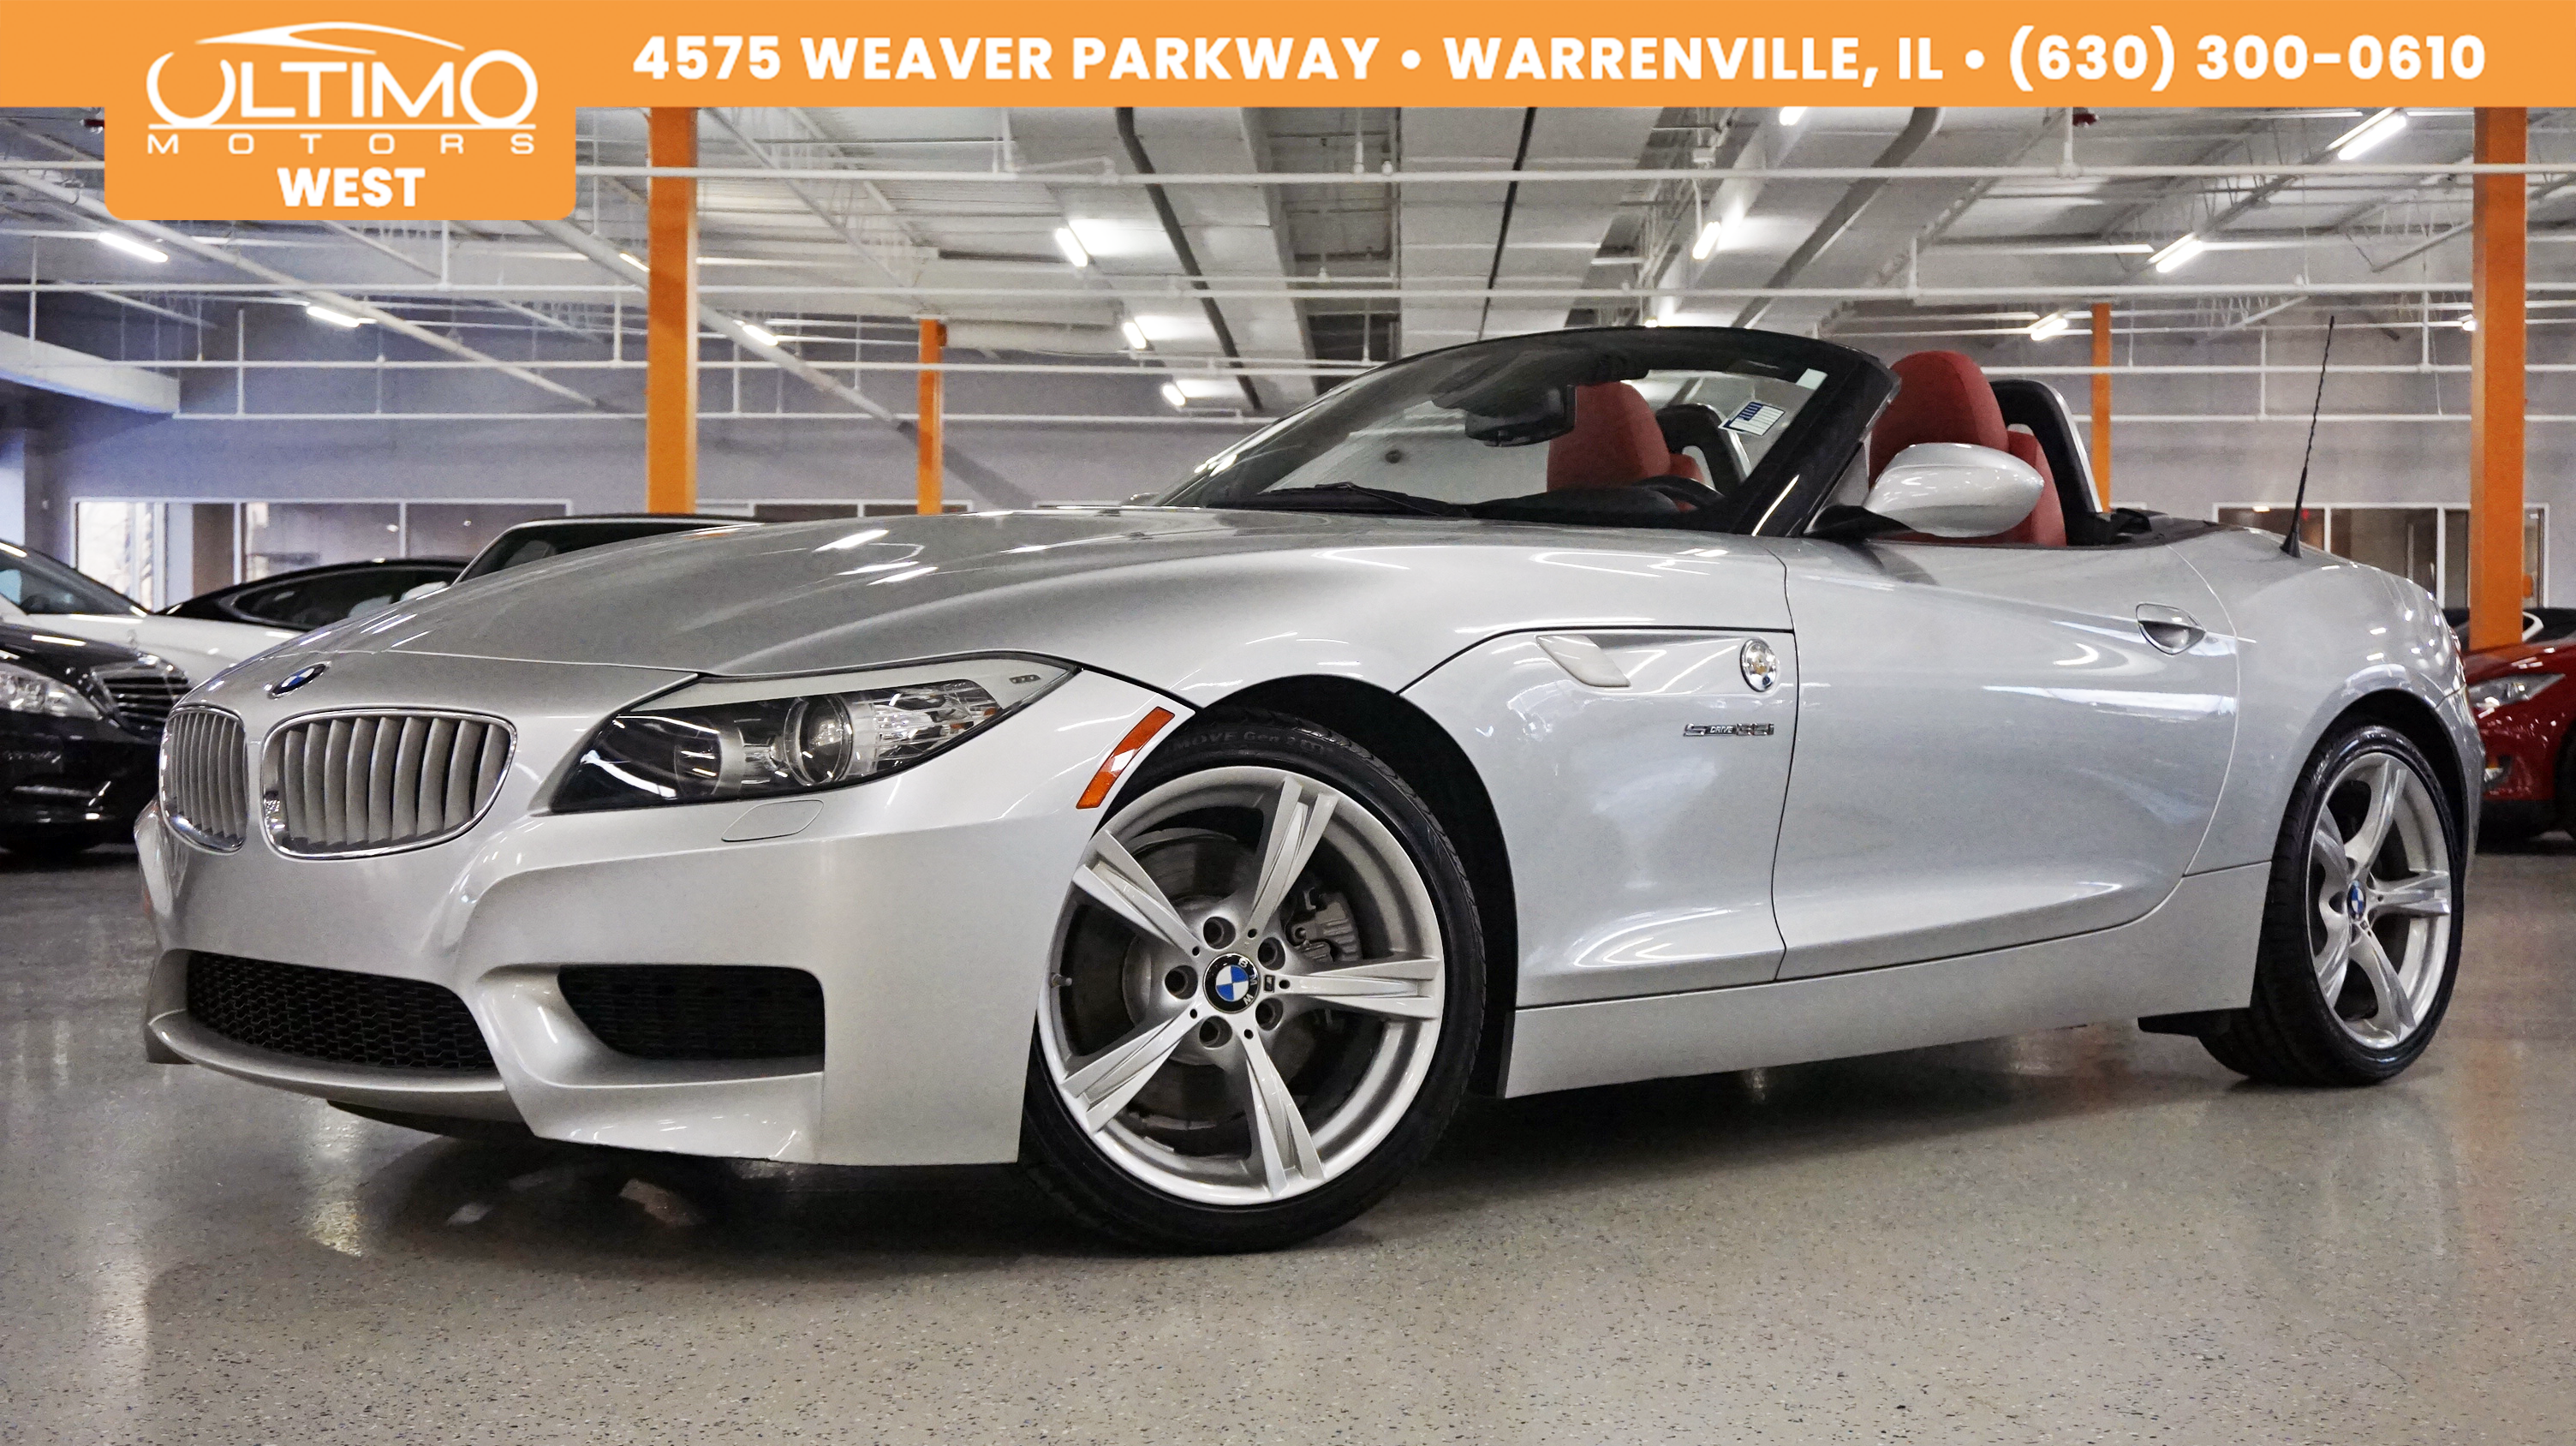 Pre-Owned 2011 BMW Z4, M-SPORT, Comfort Access sDrive35i